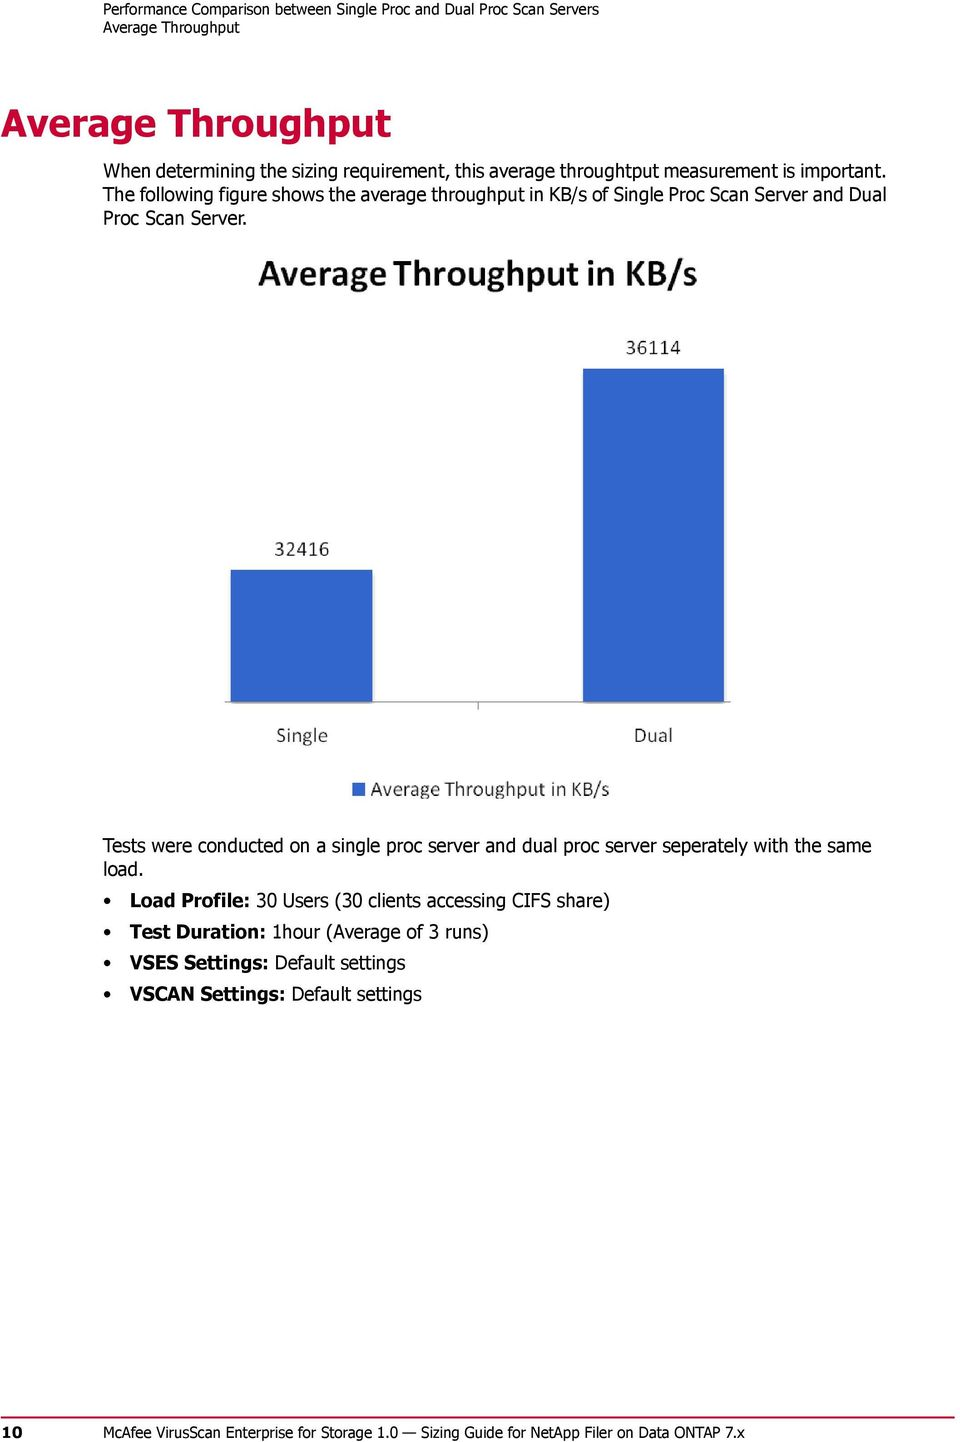 The following figure shows the average throughput in KB/s of Single Proc Scan Server and Dual Proc Scan Server.